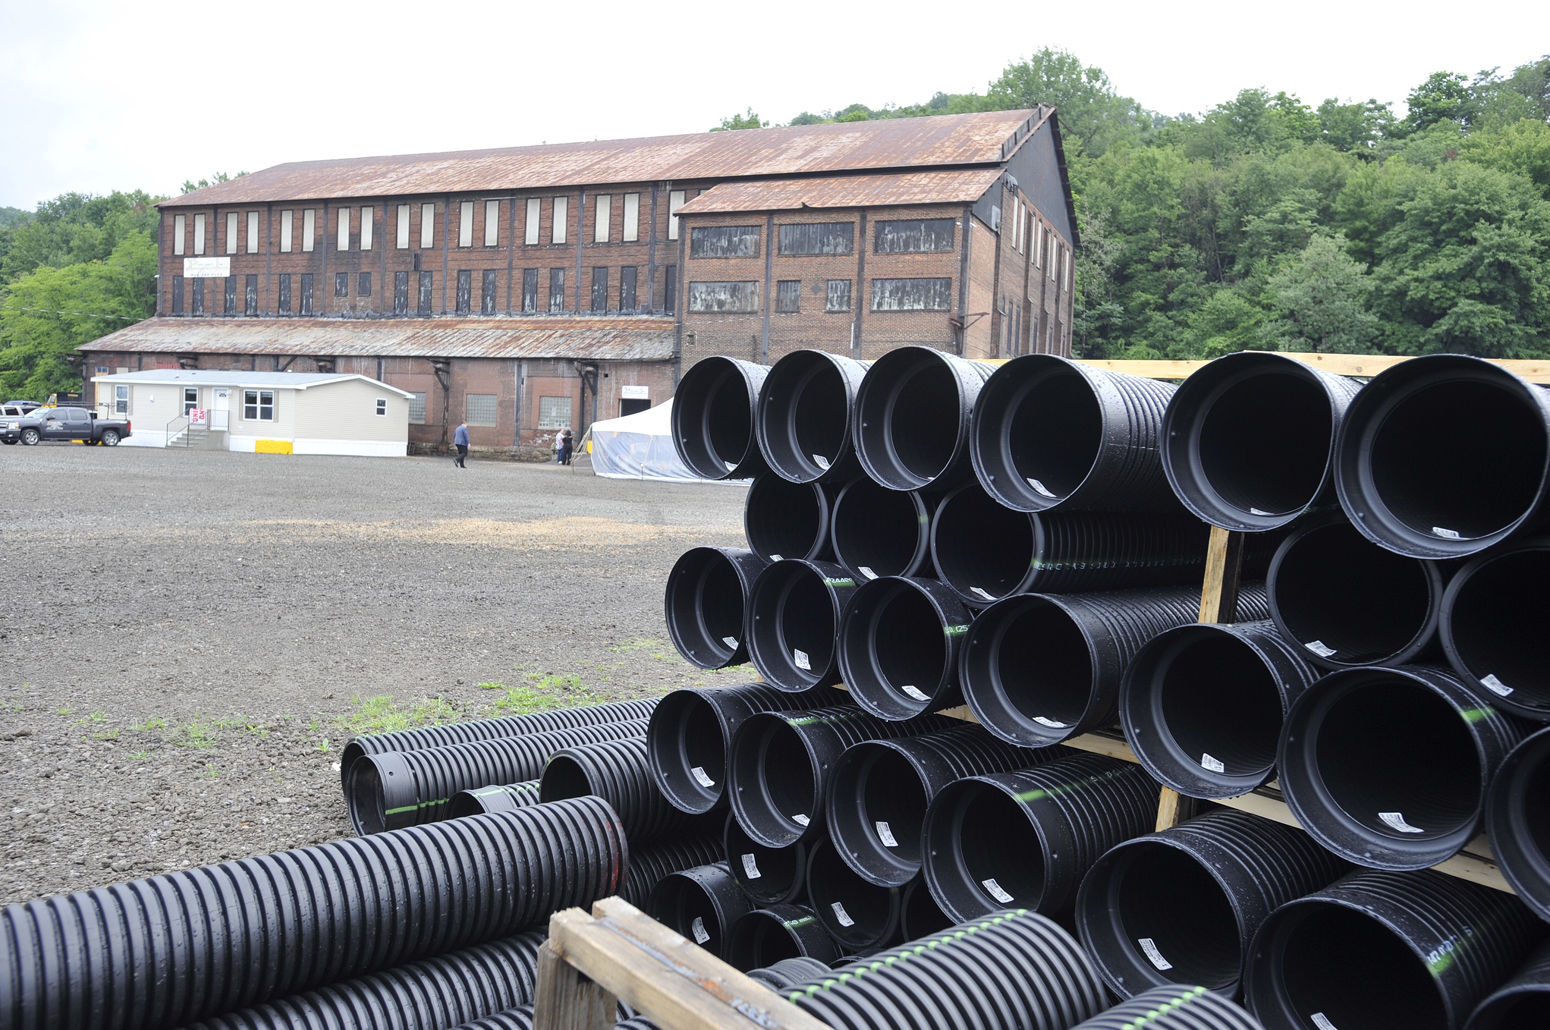 Cucina A Gas Raymond Ohio Based Company Opens Pipe Storage Facility In Johnstown News